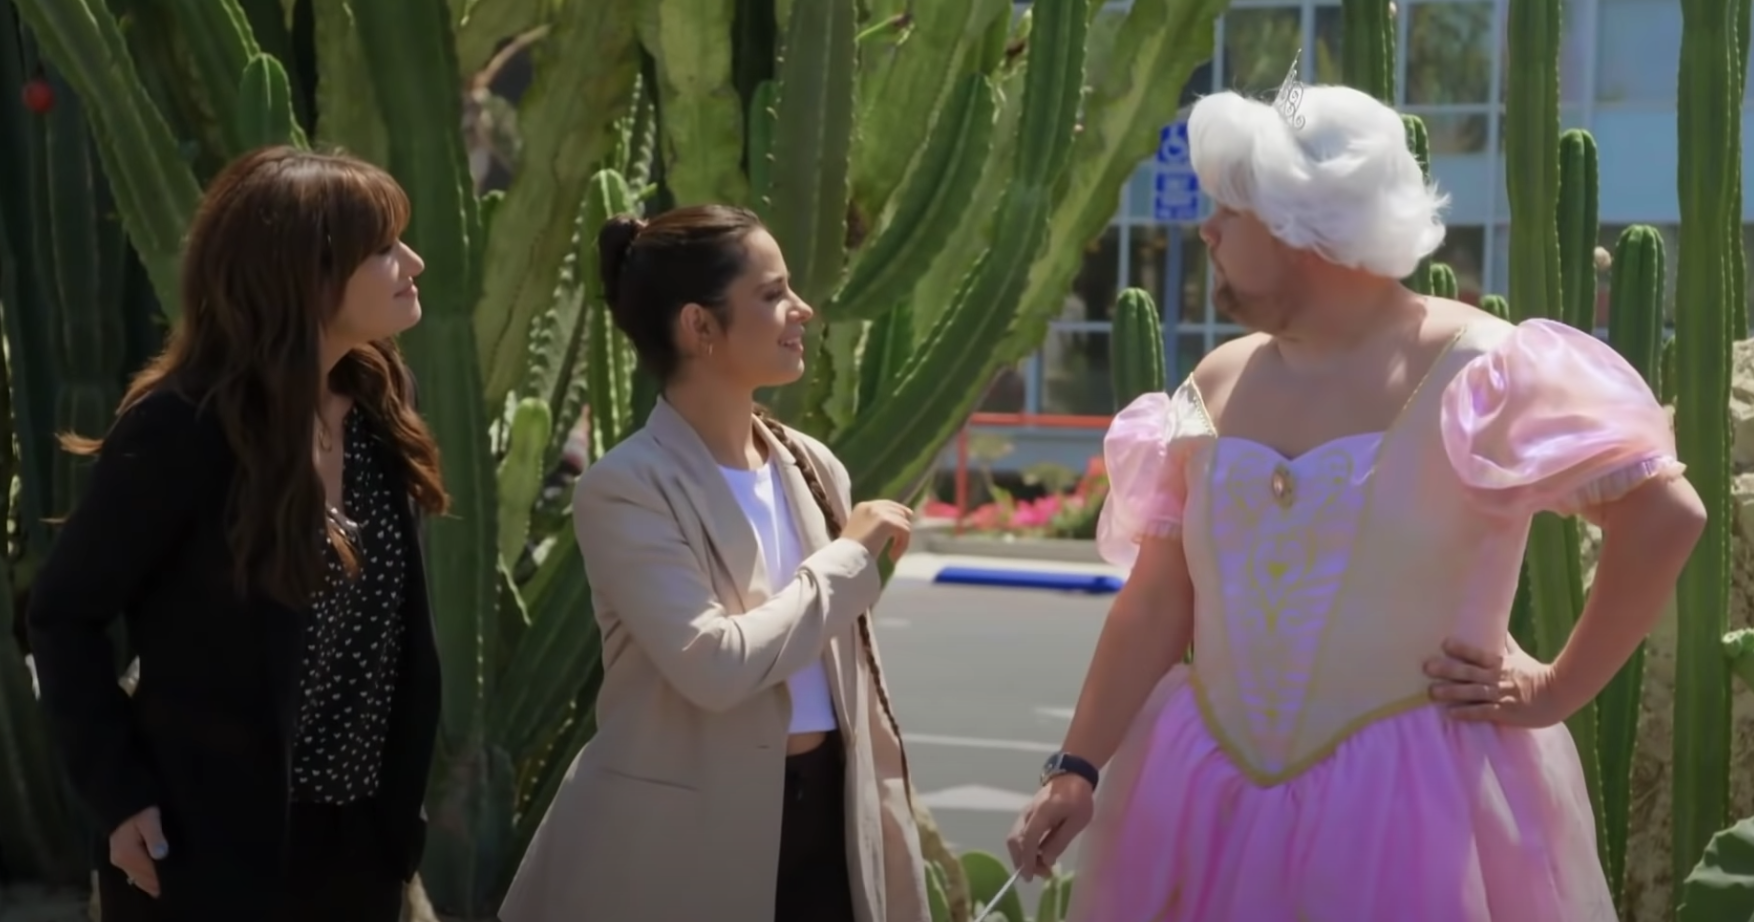 Idina, Camila, and James as the Fairy Godmother wearing a pink frilly dress